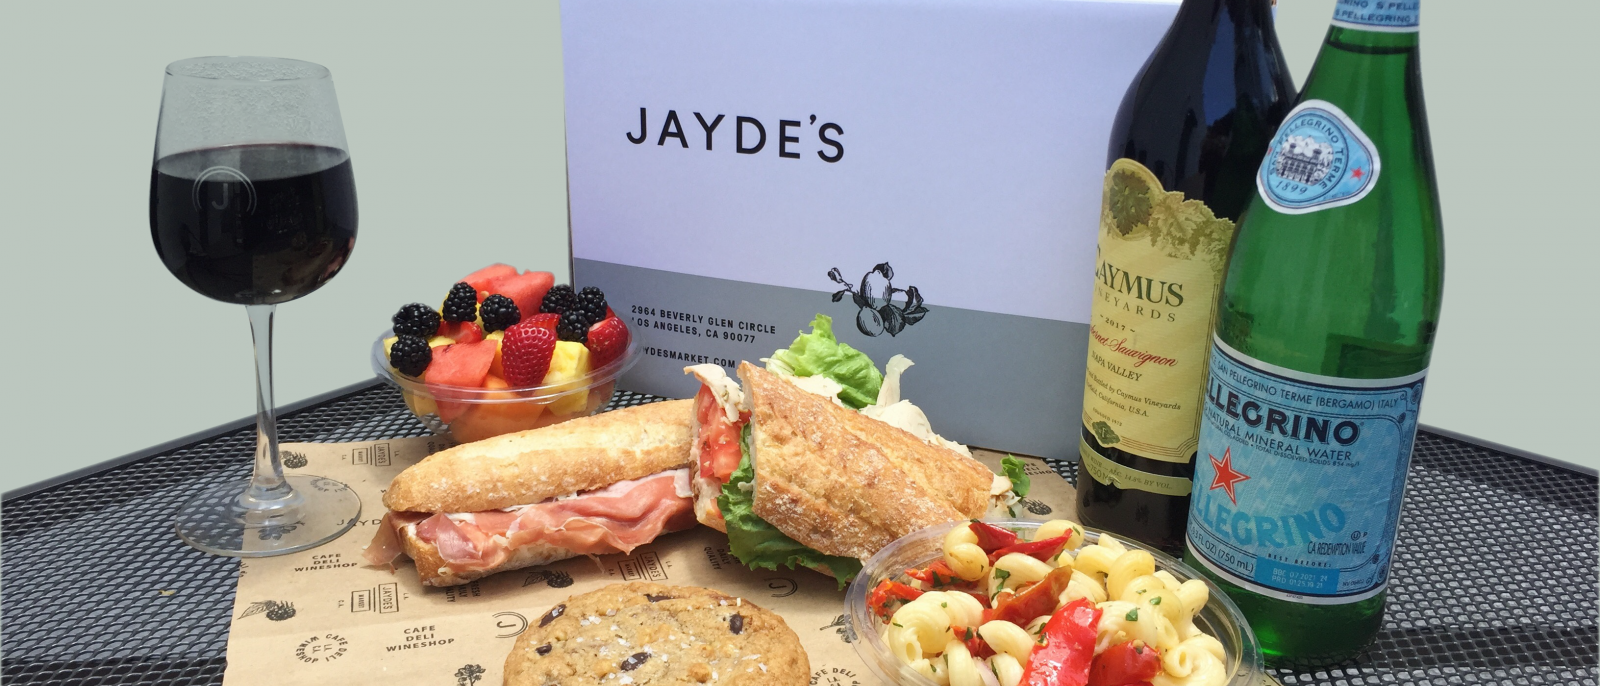 Summer Concert Picnic Box from Jayde's Market